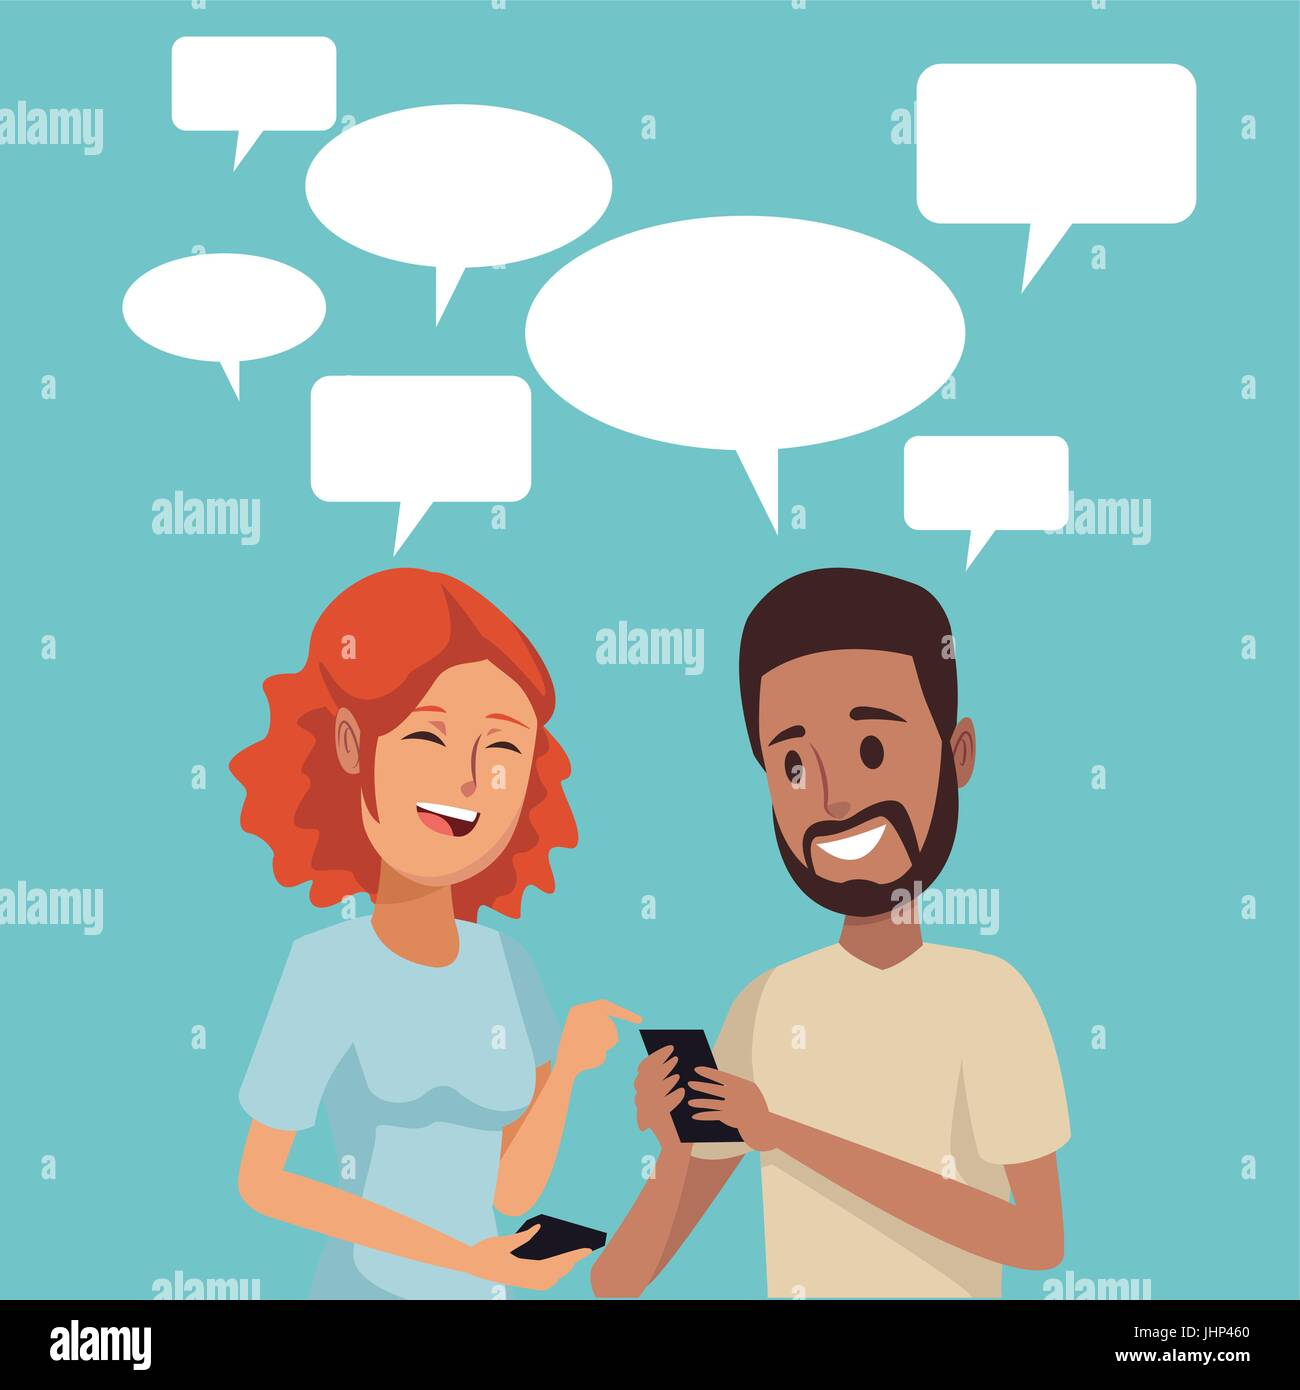 color background with couple people social network communication with dialog box - Stock Image